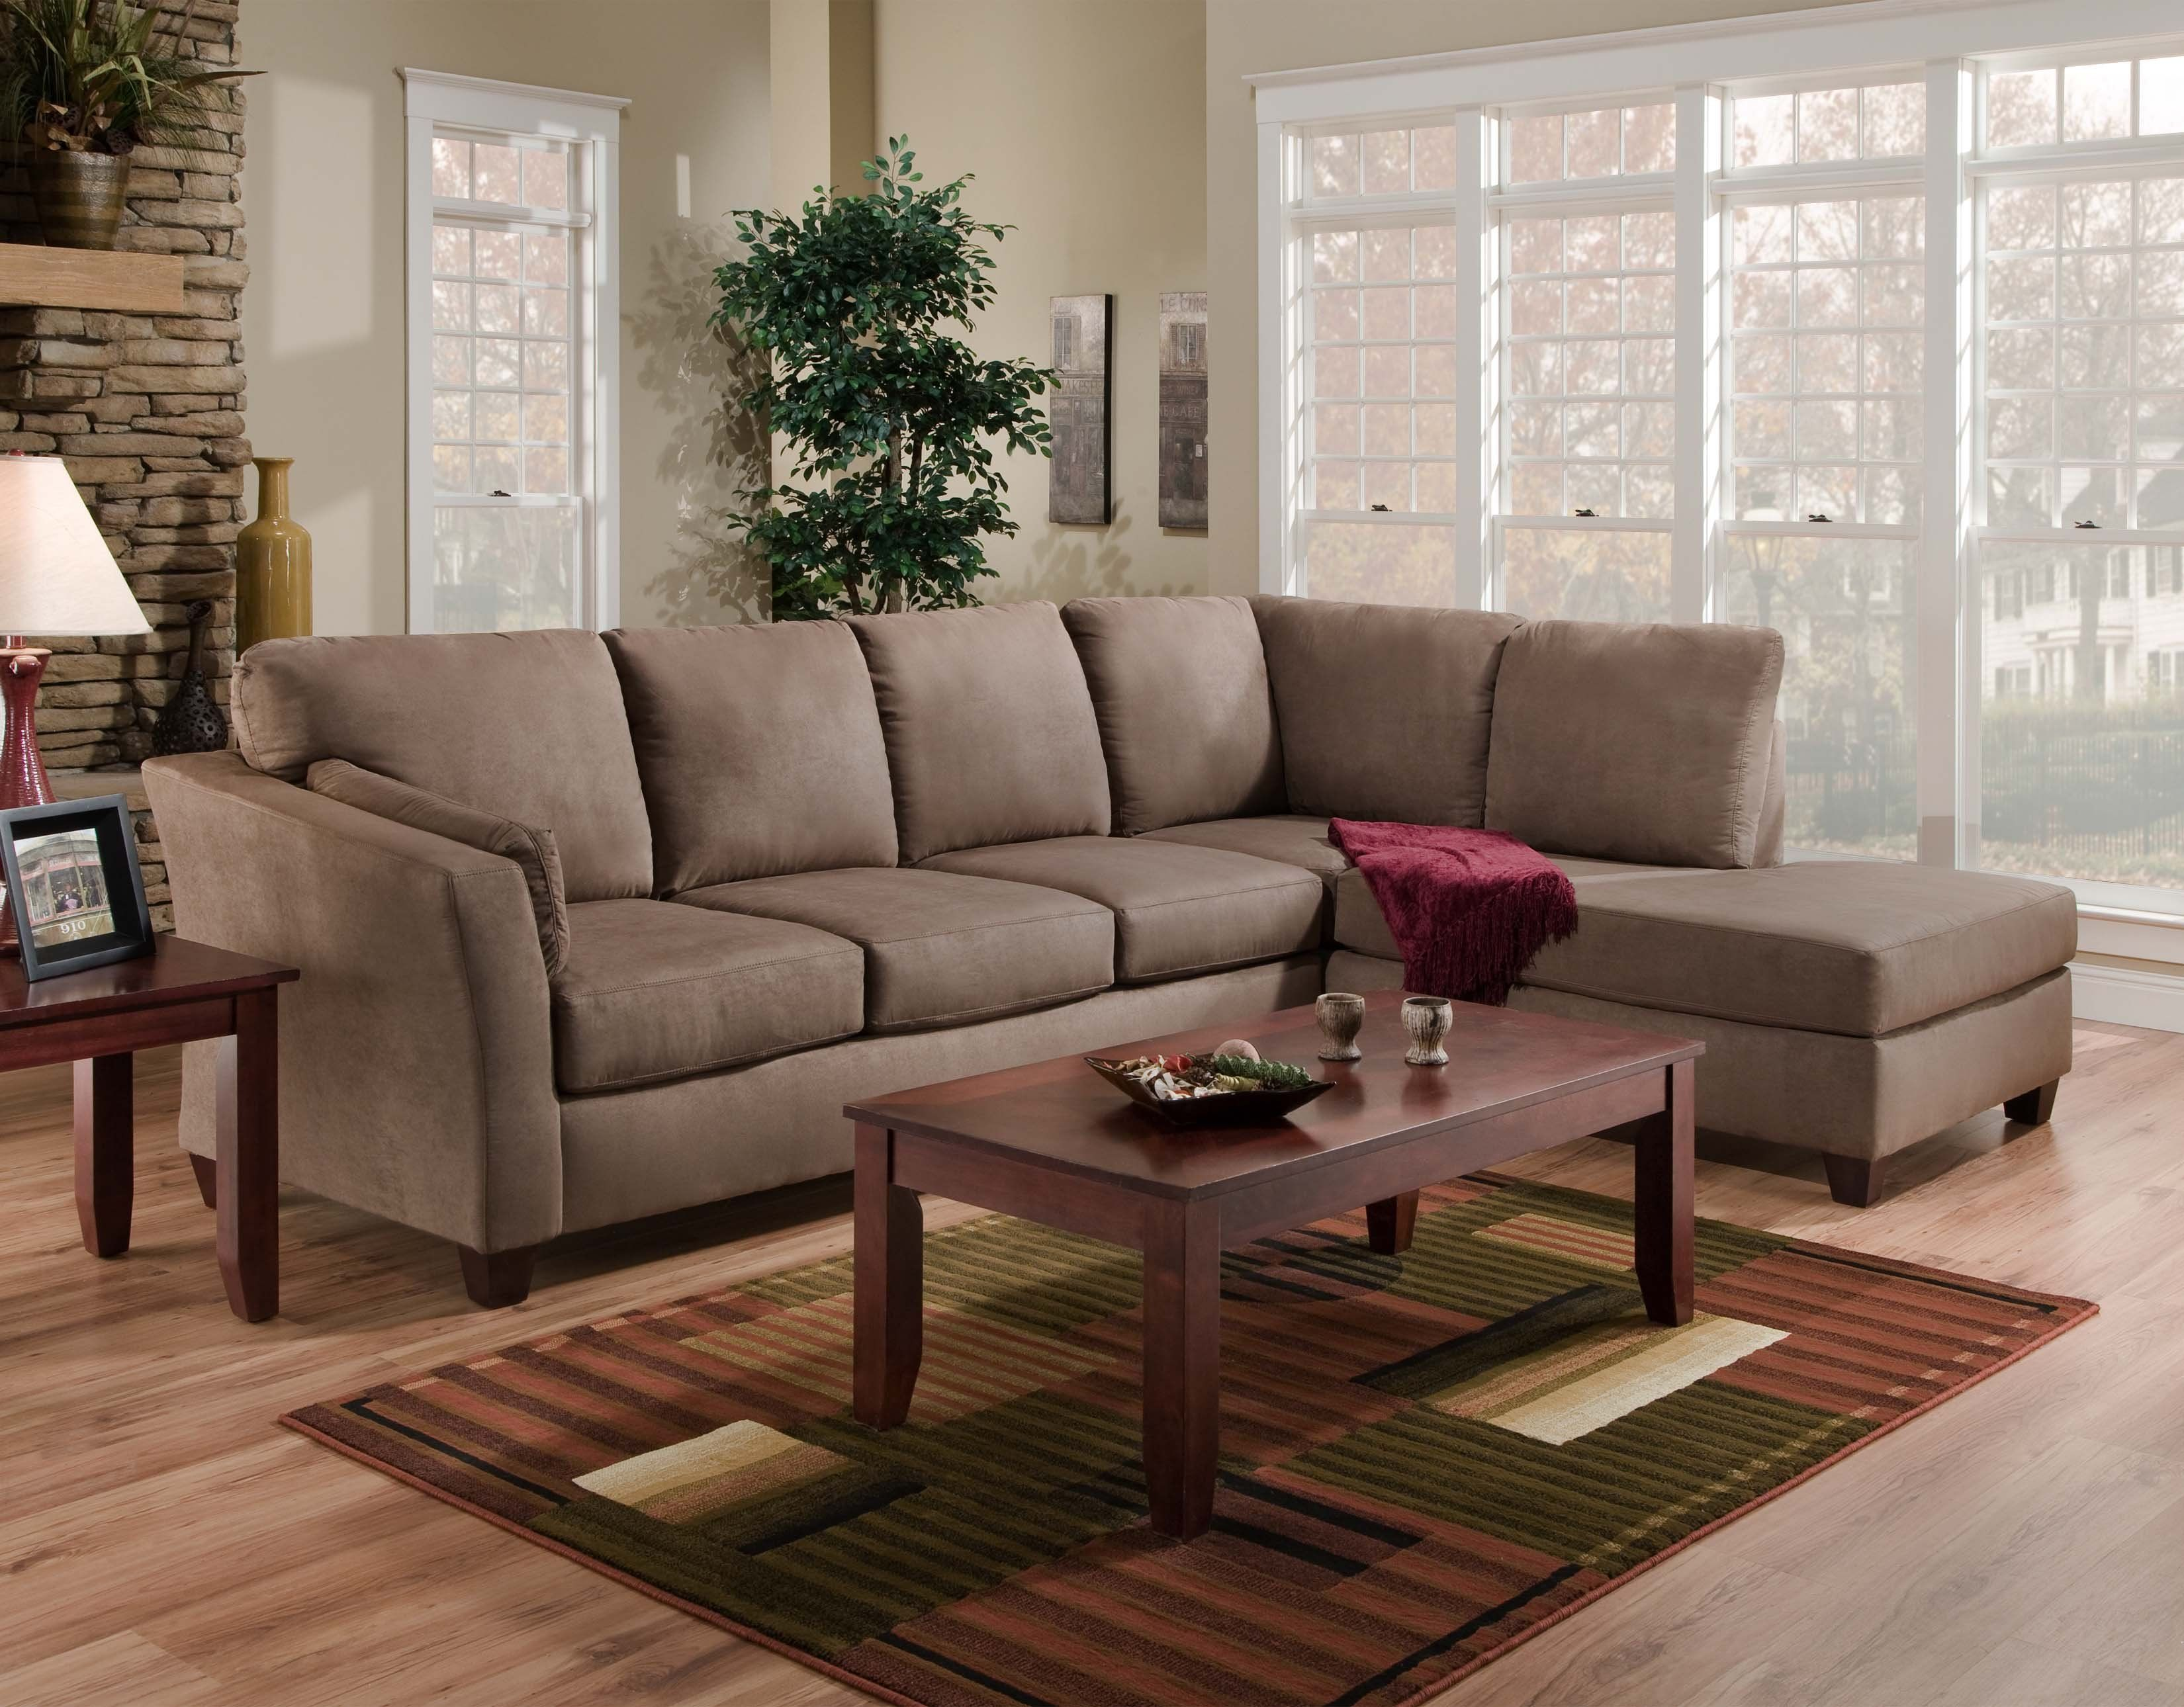 lms down collections valor worcester couches item boston ma domino sofas w providence ri reclining with us drop england and casual sofa new international couch rotmans table